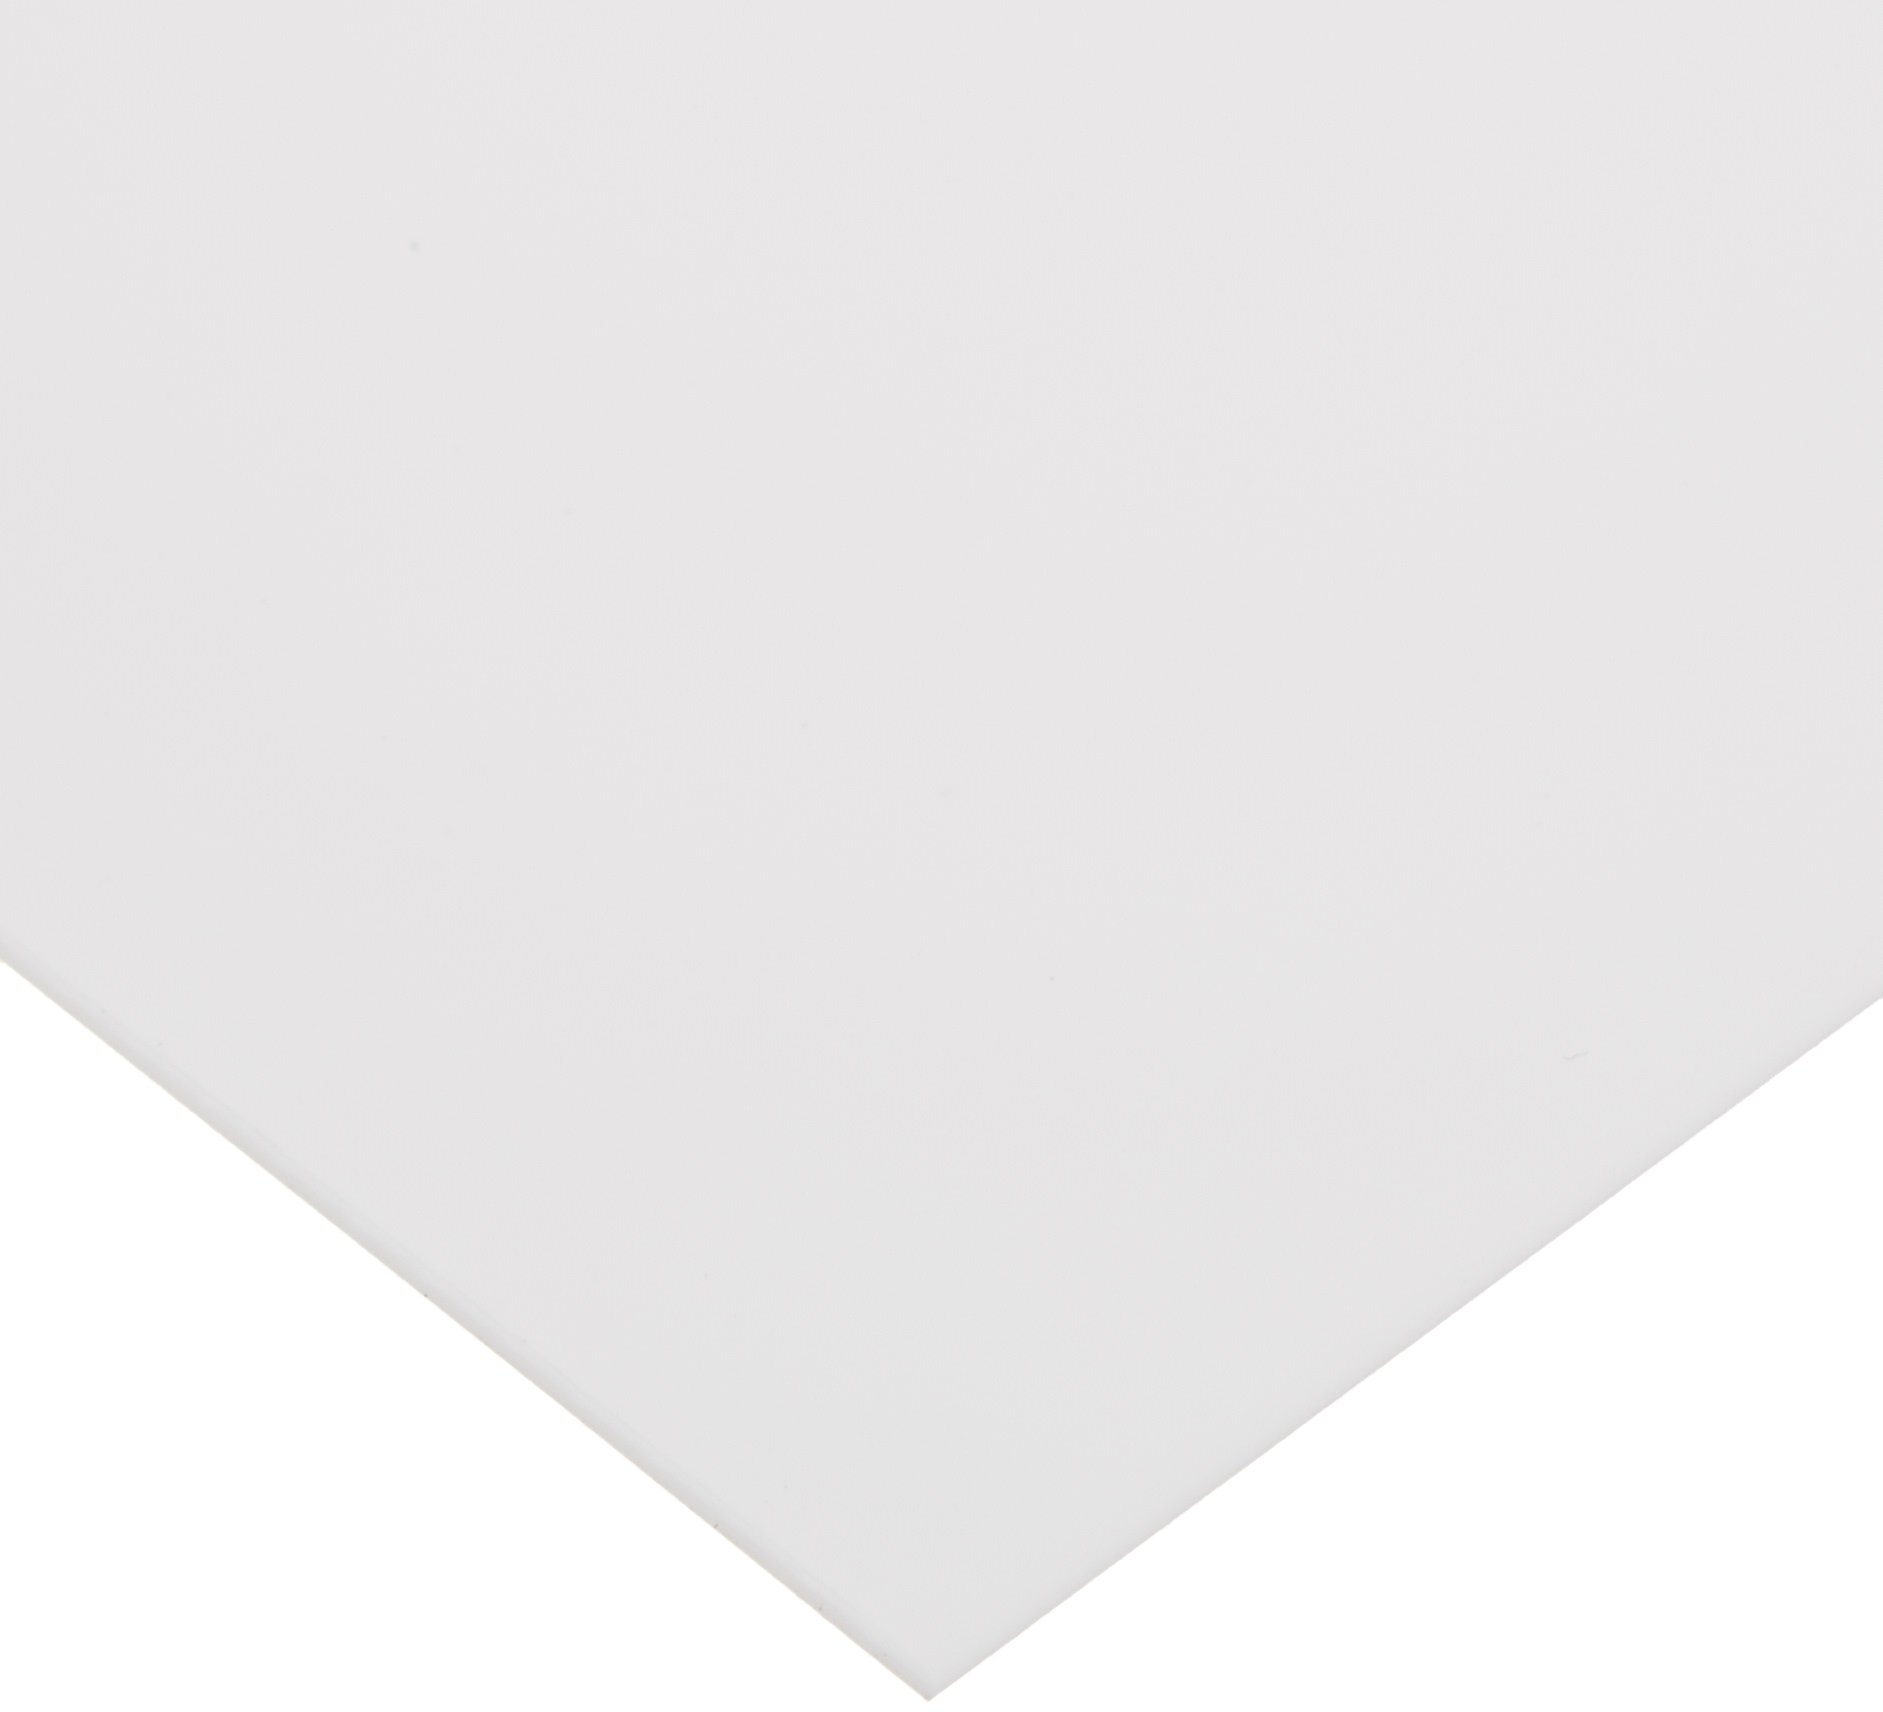 EMD Millipore 1.05735.0001 Plastic Backed TLC Classical Silica Plate, 200µm Thick Silica Gel 60 F254, 20cm Width, 20cm Length (Pack of 25) by Millipore